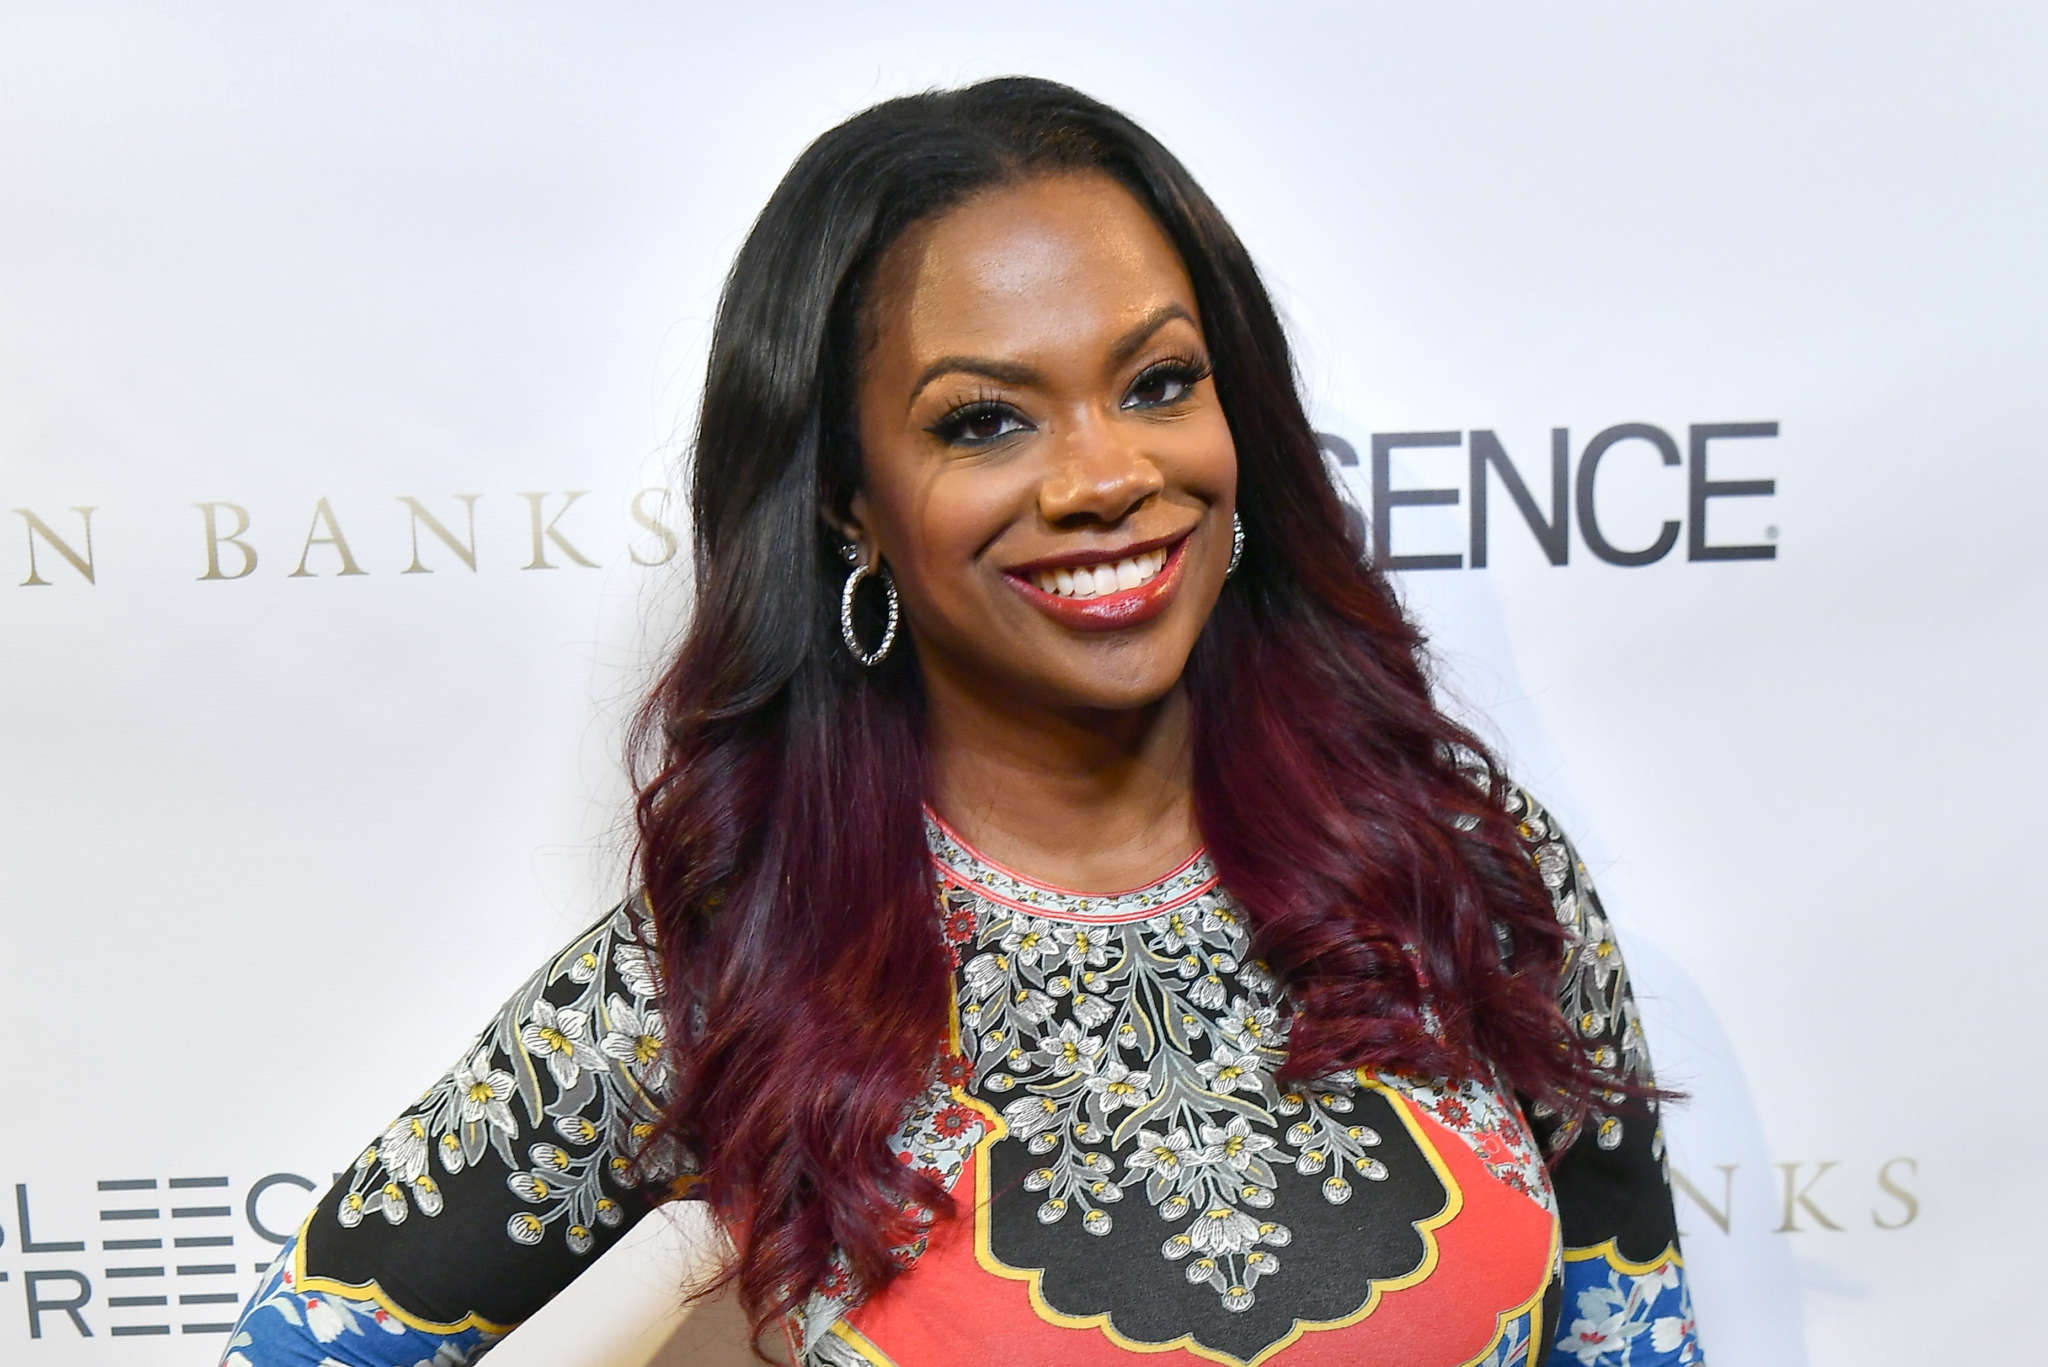 Kandi Burruss Looks Electric On Stage During The Dungeon Show